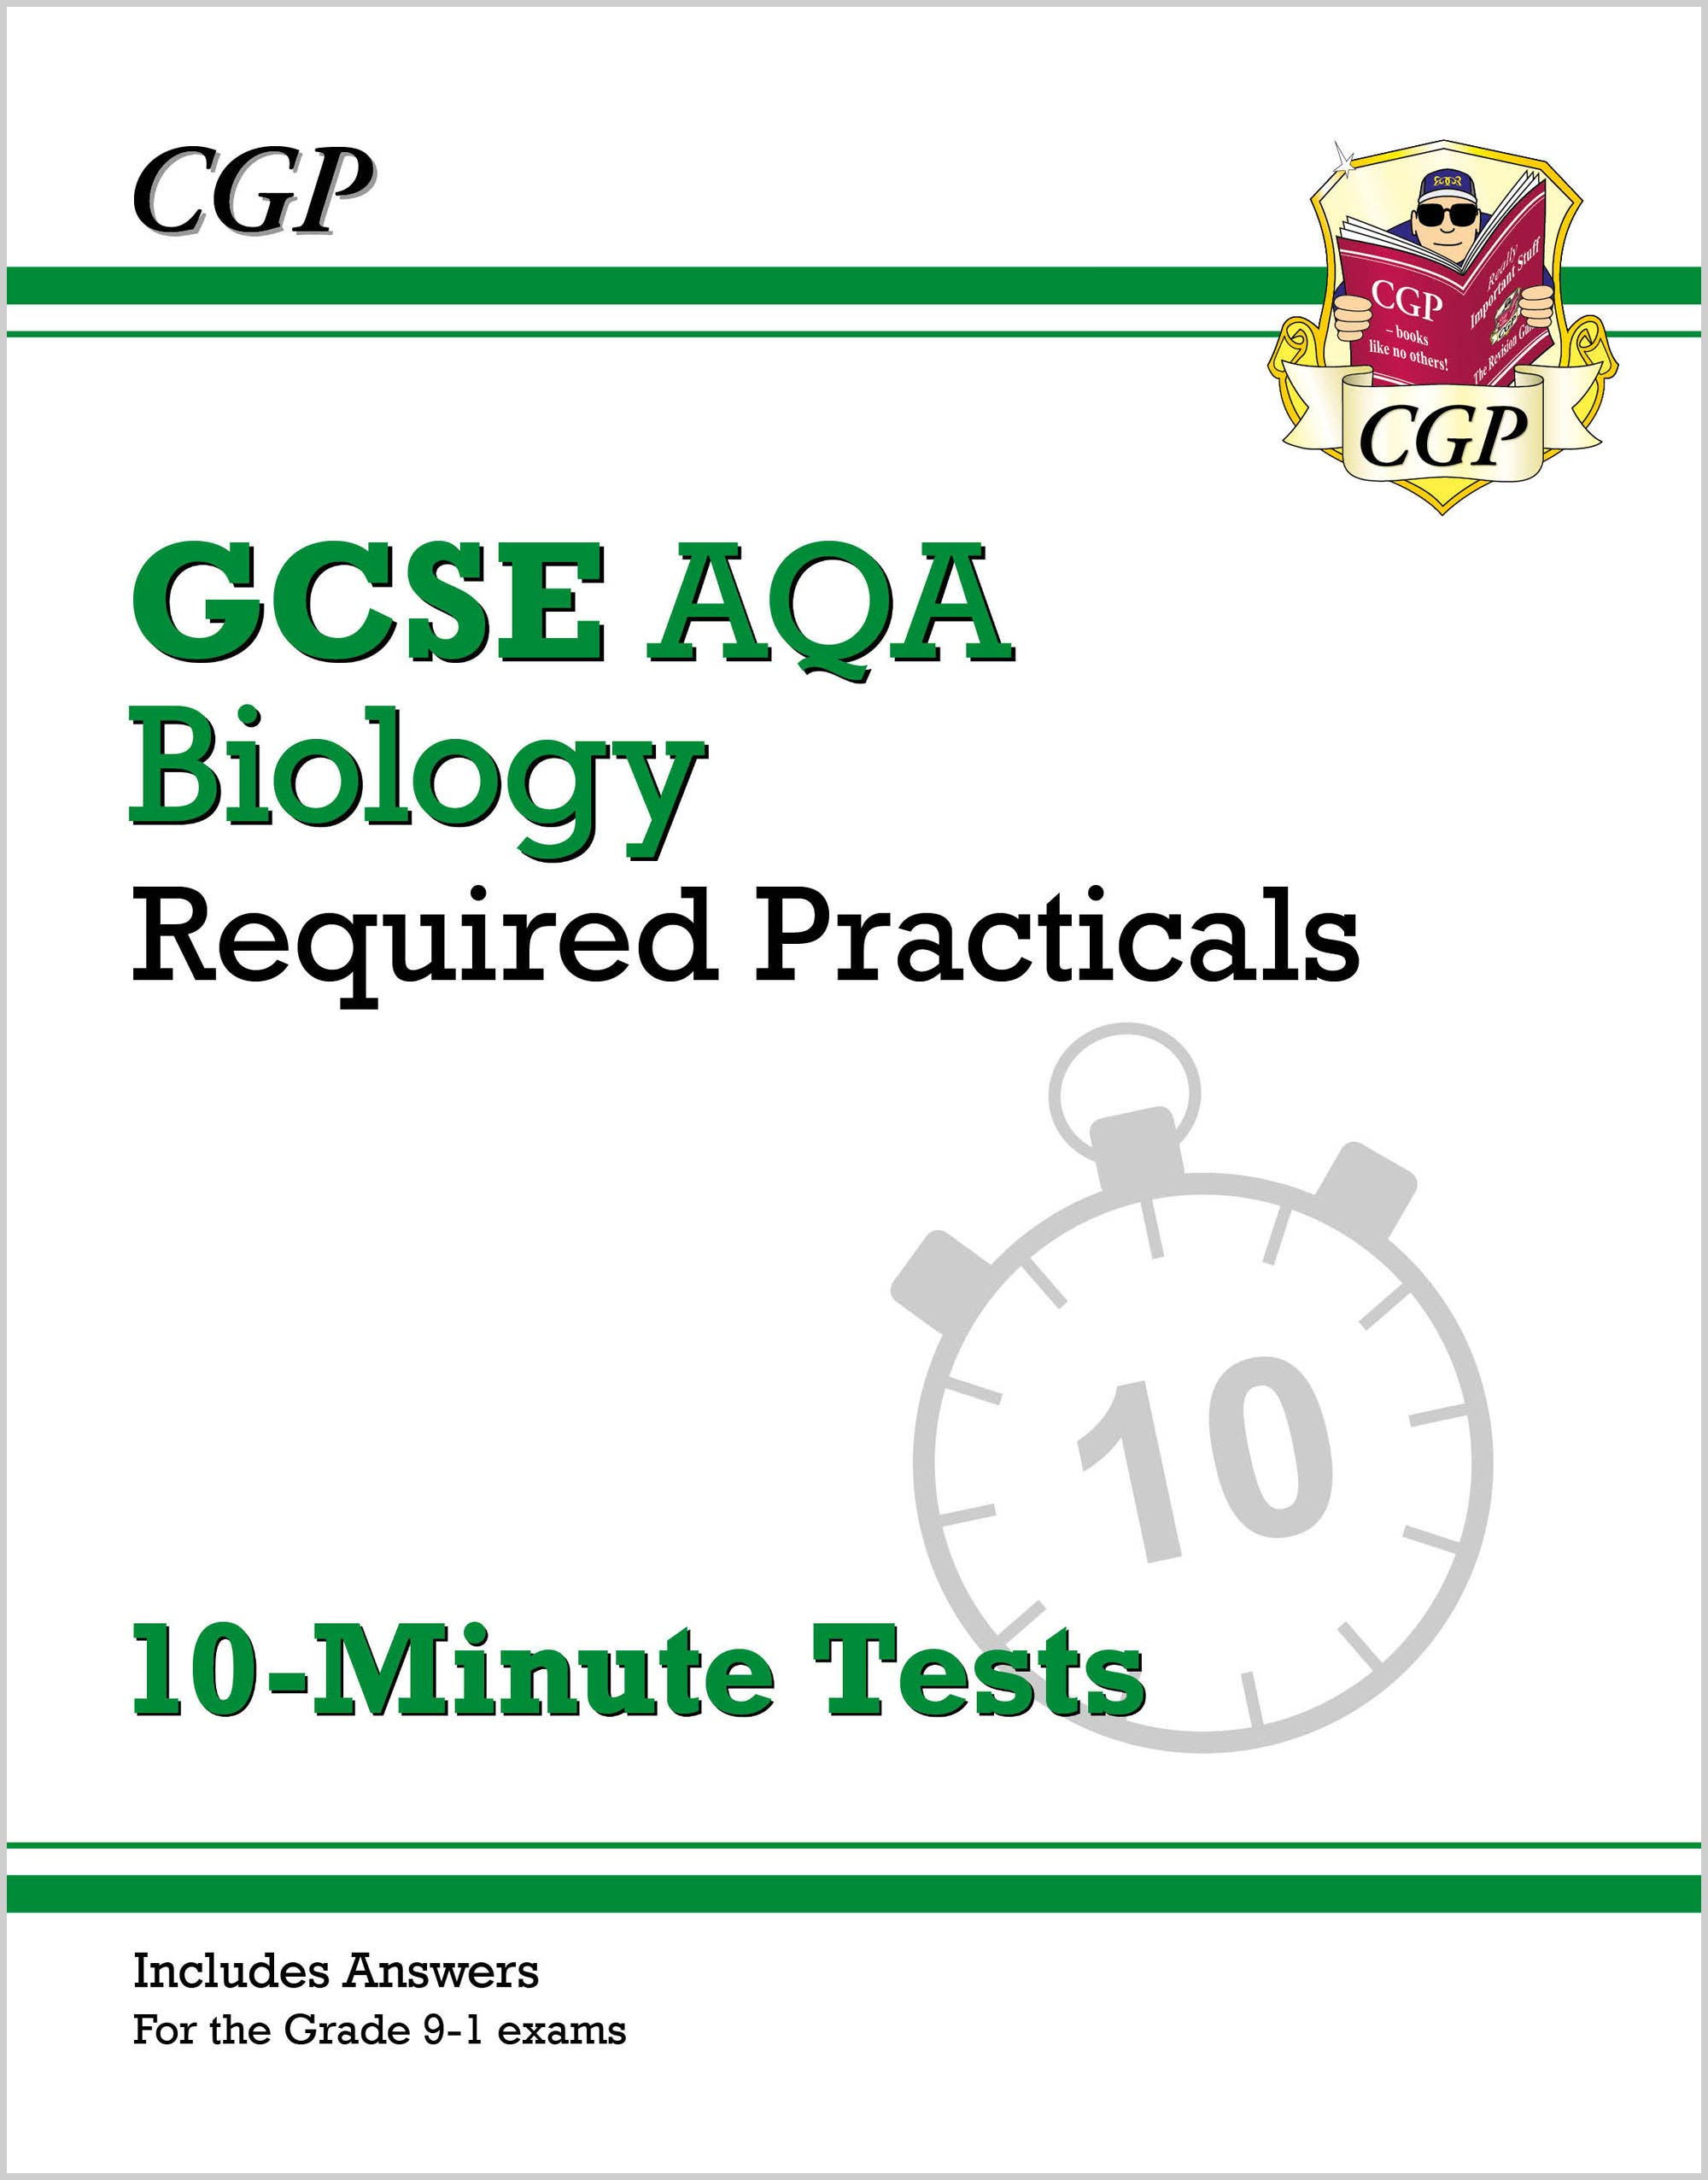 BAPRXP41 - New Grade 9-1 GCSE Biology: AQA Required Practicals 10-Minute Tests (includes Answers)